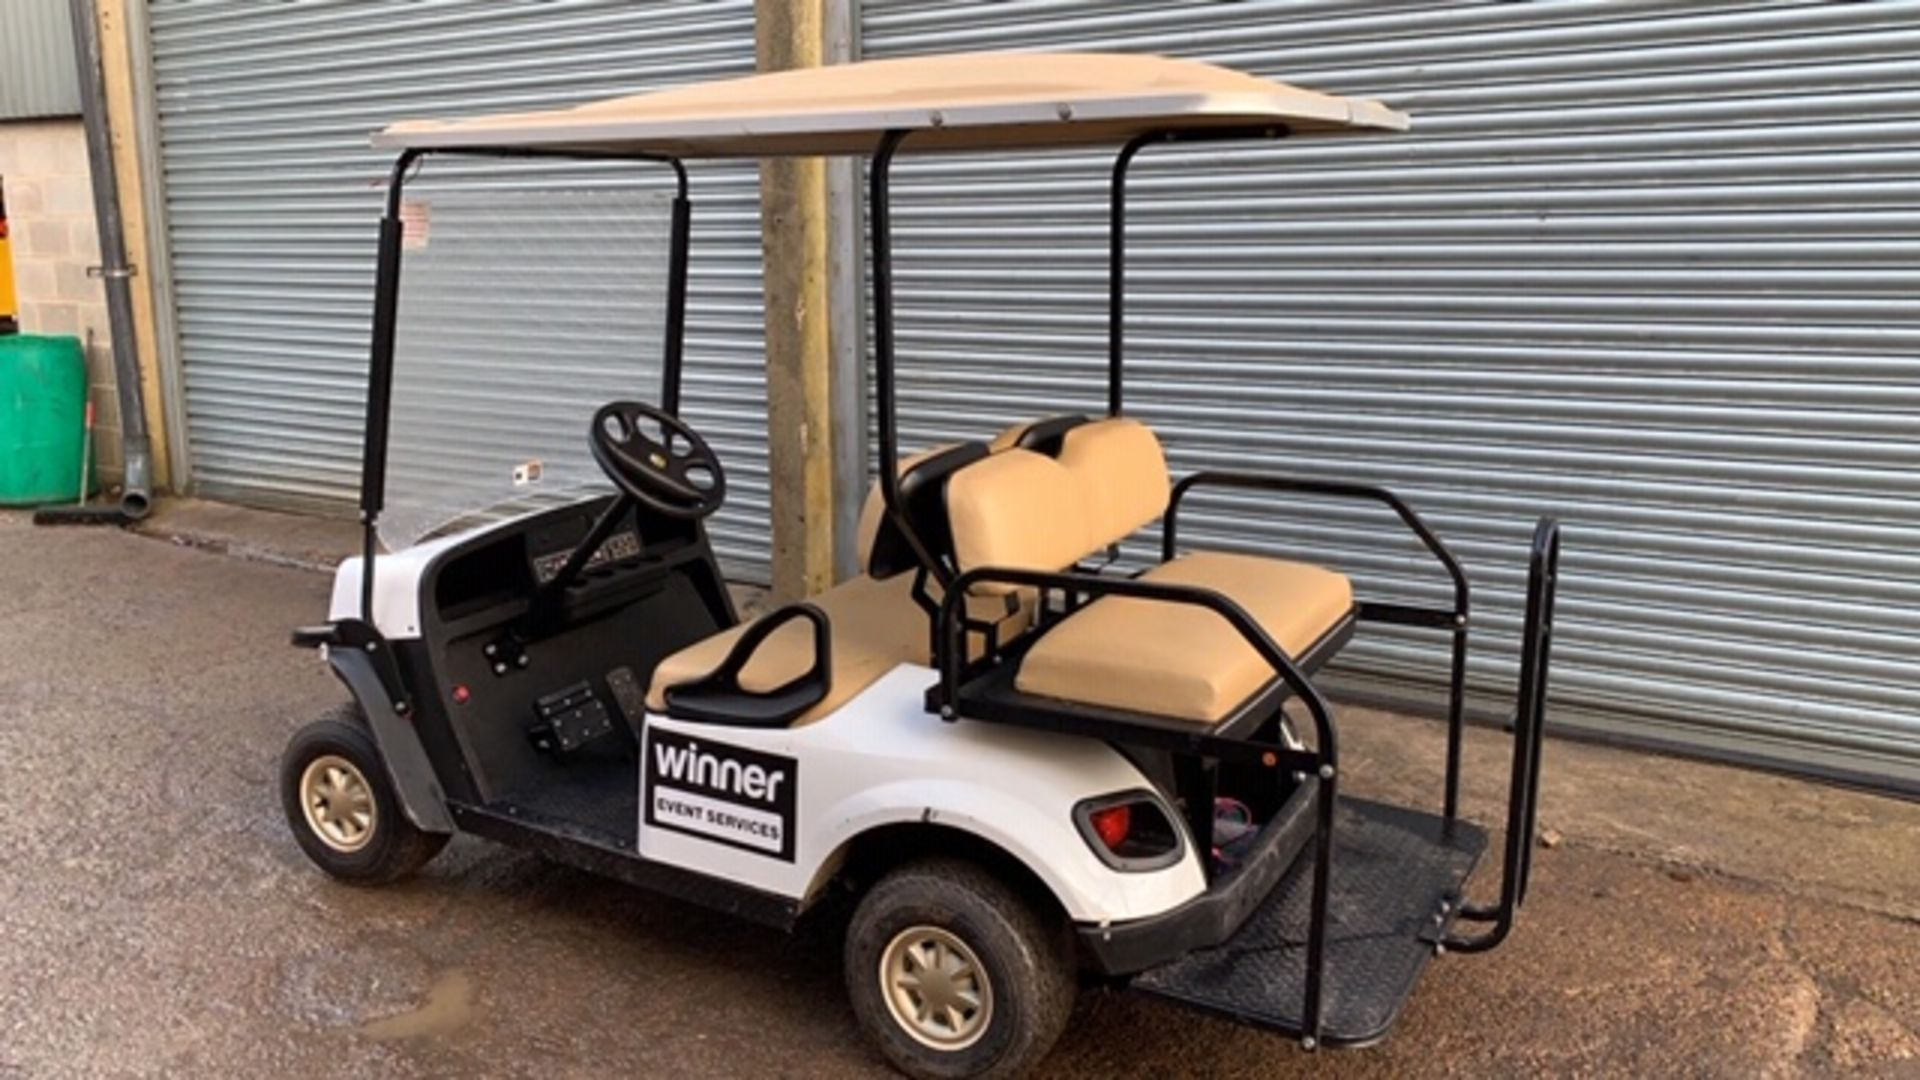 Lot 10 - CUSHMAN EZGO SHUTTLE 4 PETROL ENGINED 4 SEATER GOLF / EVENTS BUGGY. YEAR 2017 BUILD. UNKNOWN HRS.